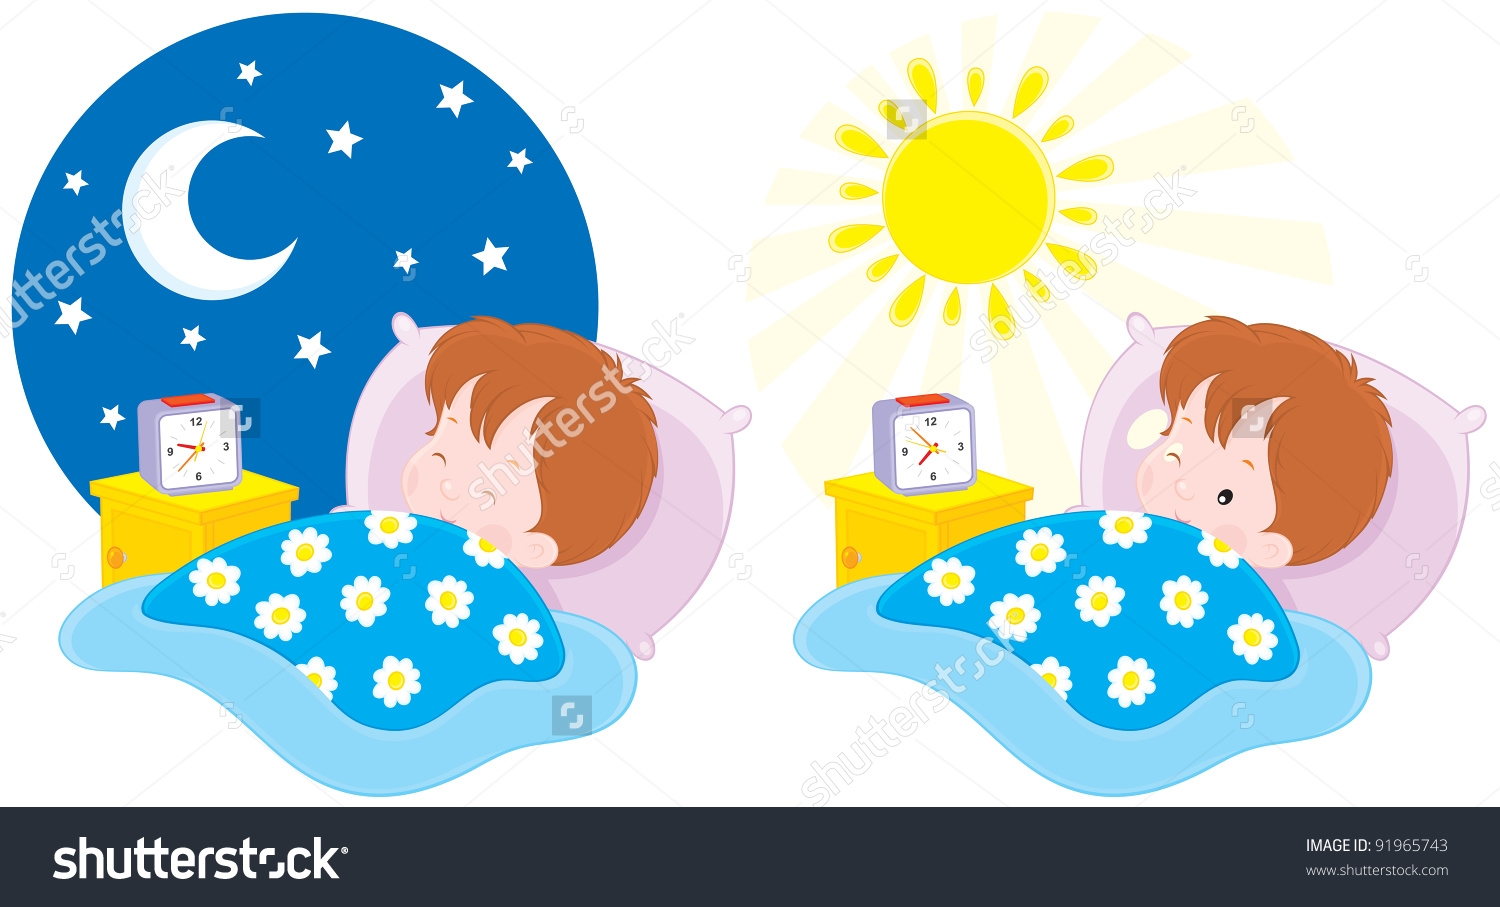 Morning clipart wakeup Wake clipart up clipart up